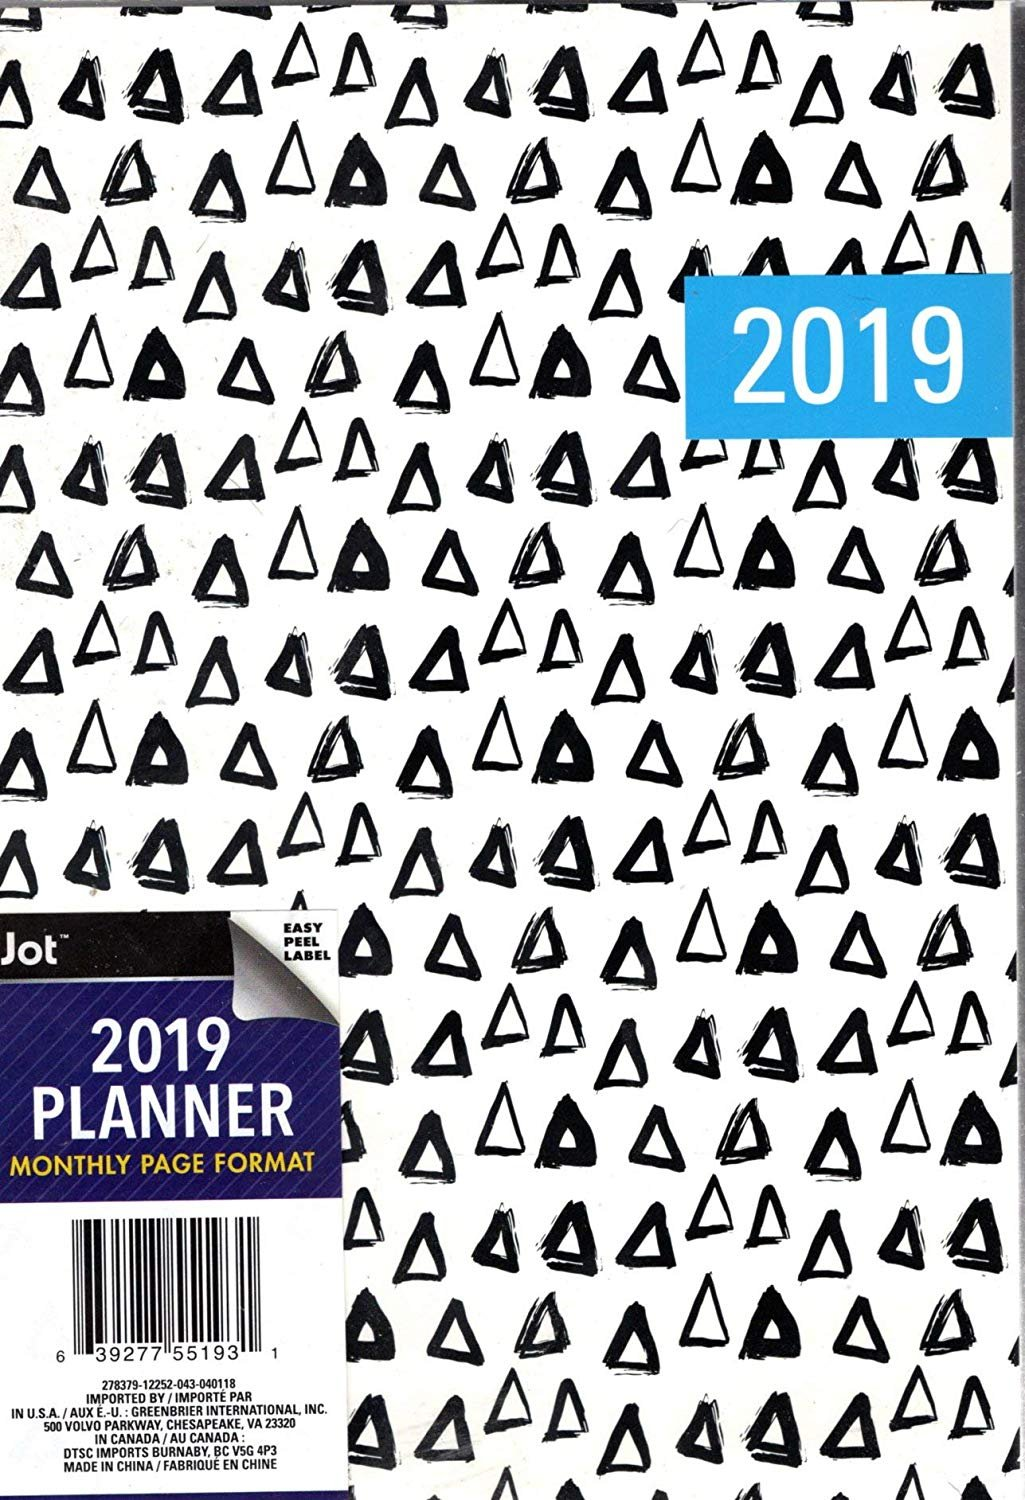 2019 Personal Monthly Planner/Calendar / Organizer - Monthly Page Format - v4